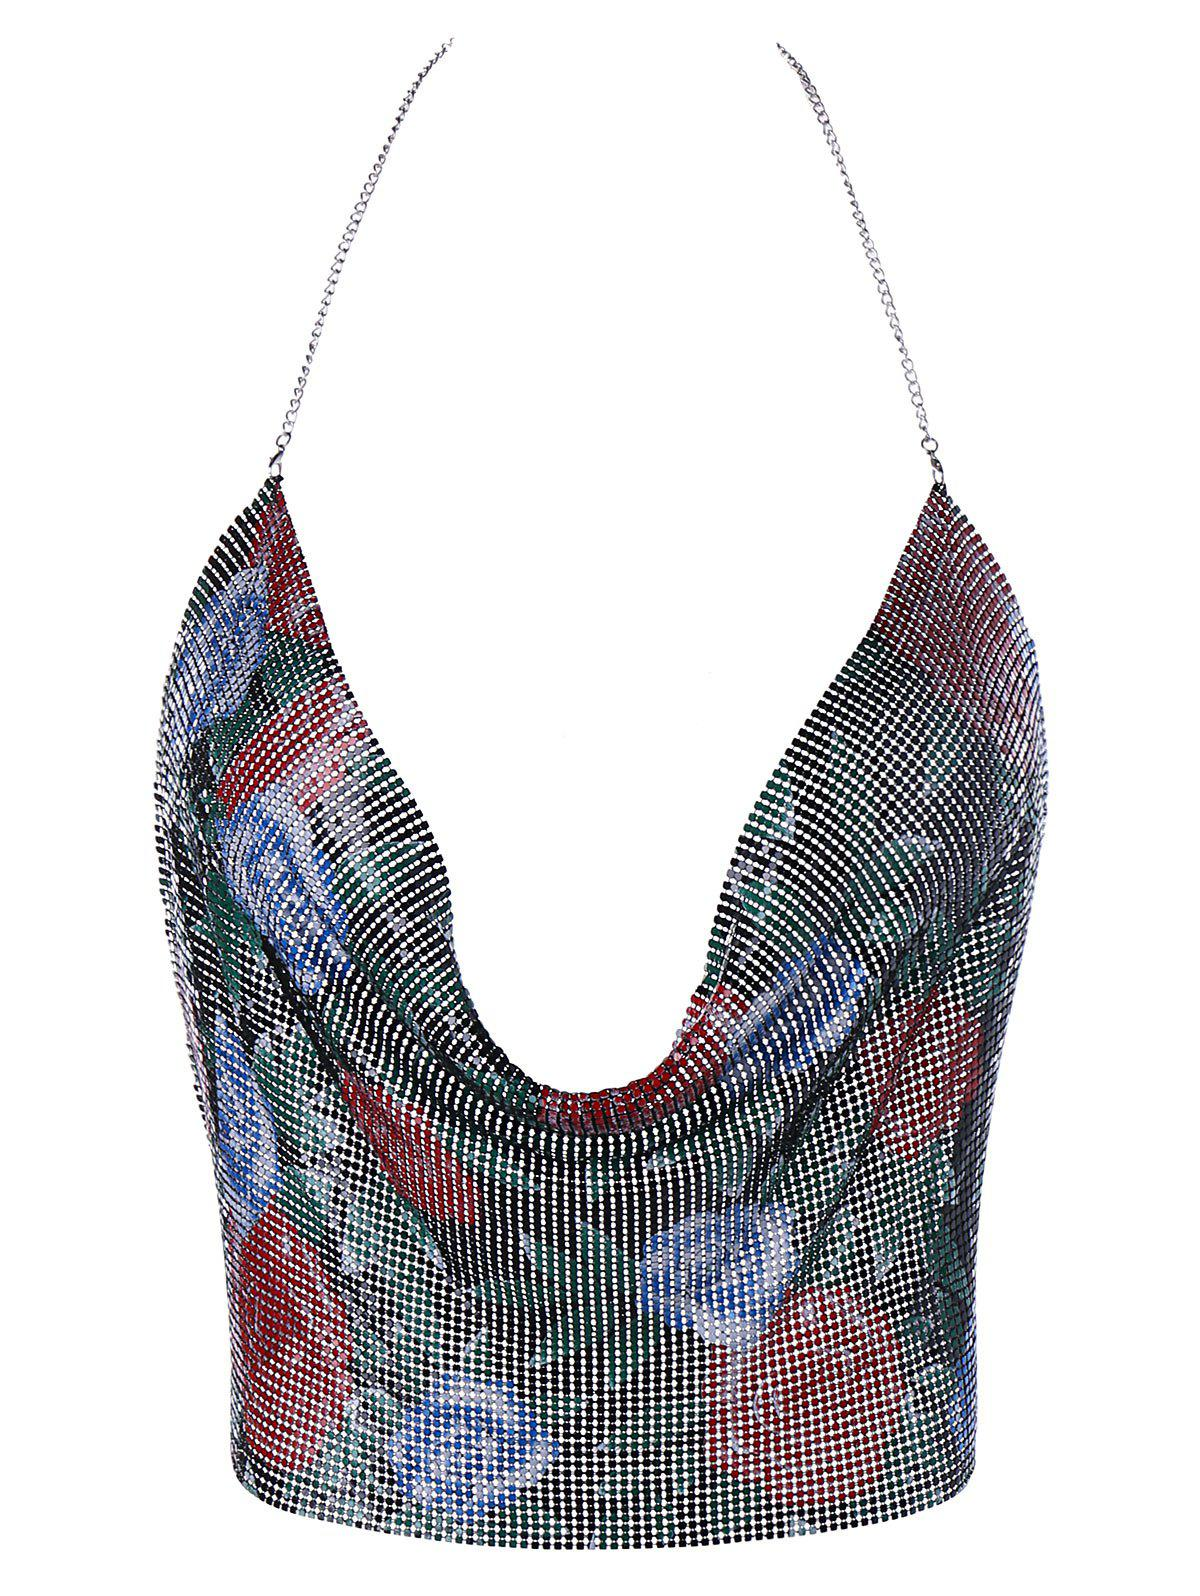 Floral Metallic Chain Crop Cami Top - COLORMIX ONE SIZE